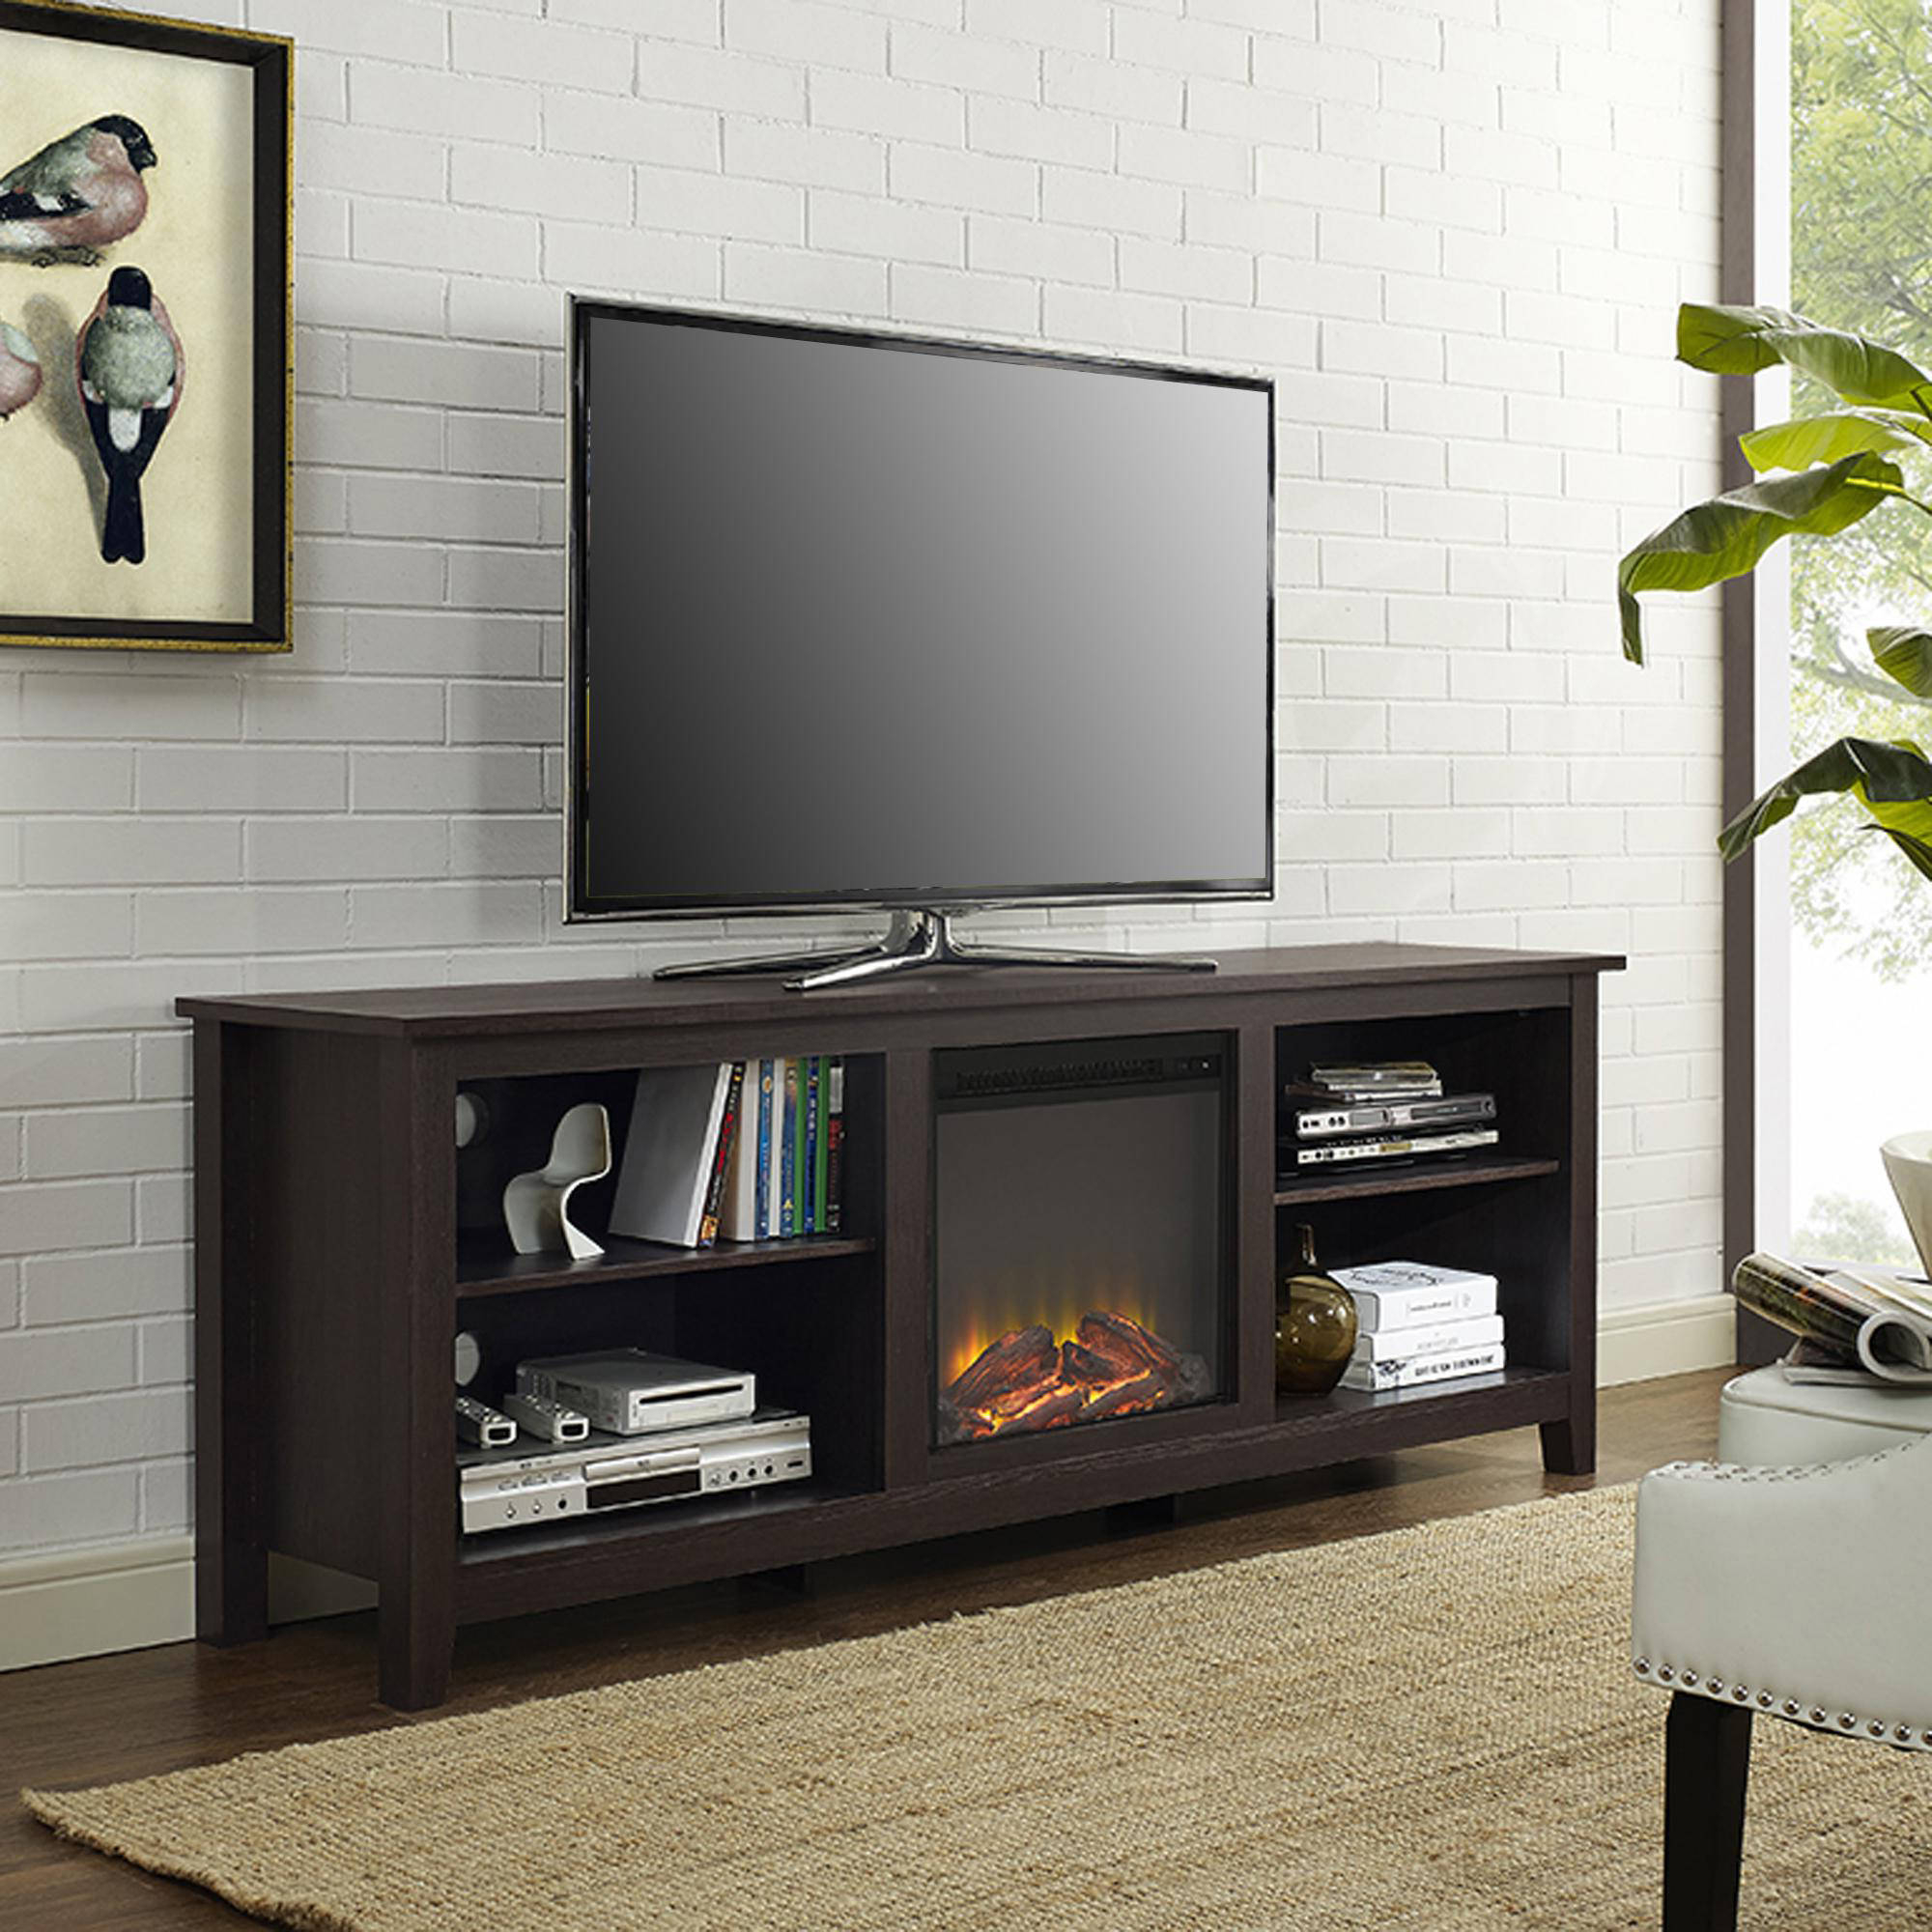 "70"" Fireplace Tv Media Storage Stand For Tv's Up To 75"" Espresso For Newest Tv Stands For 70 Inch Tvs (Gallery 3 of 20)"